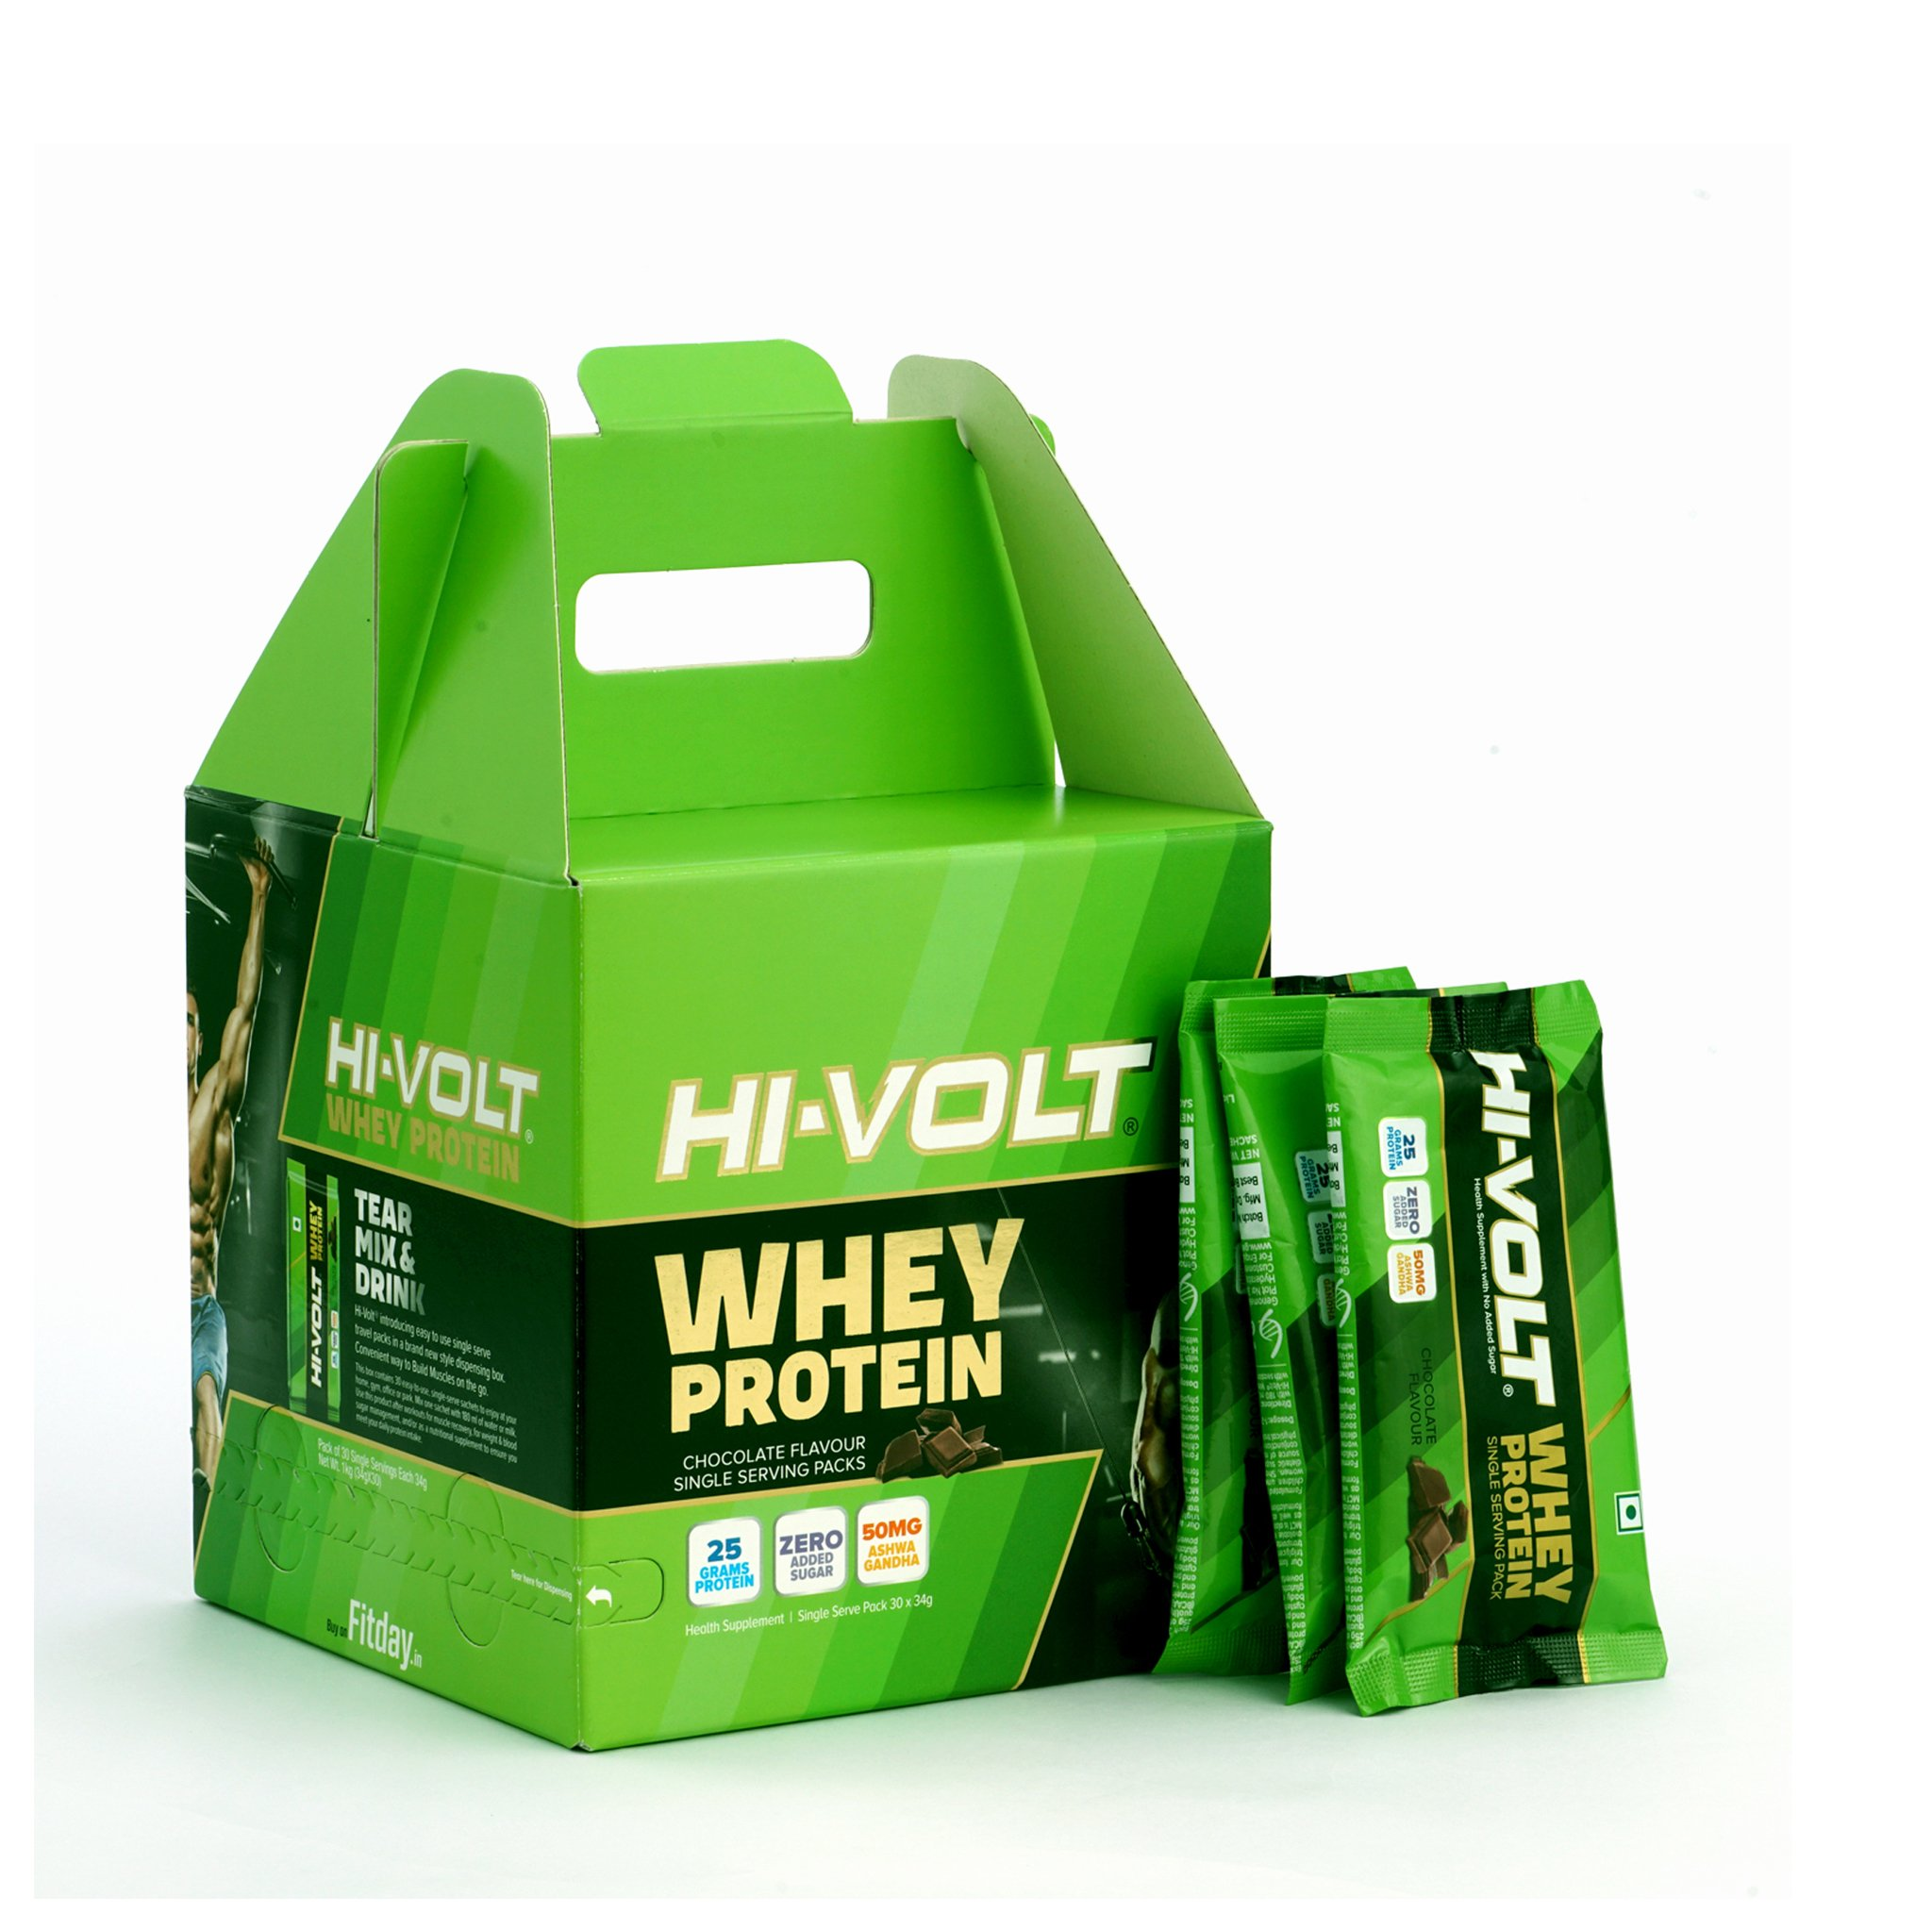 Hi  VOLT Whey Protein   Chocolate  34GM 30's Buy 1 Get 1 Free